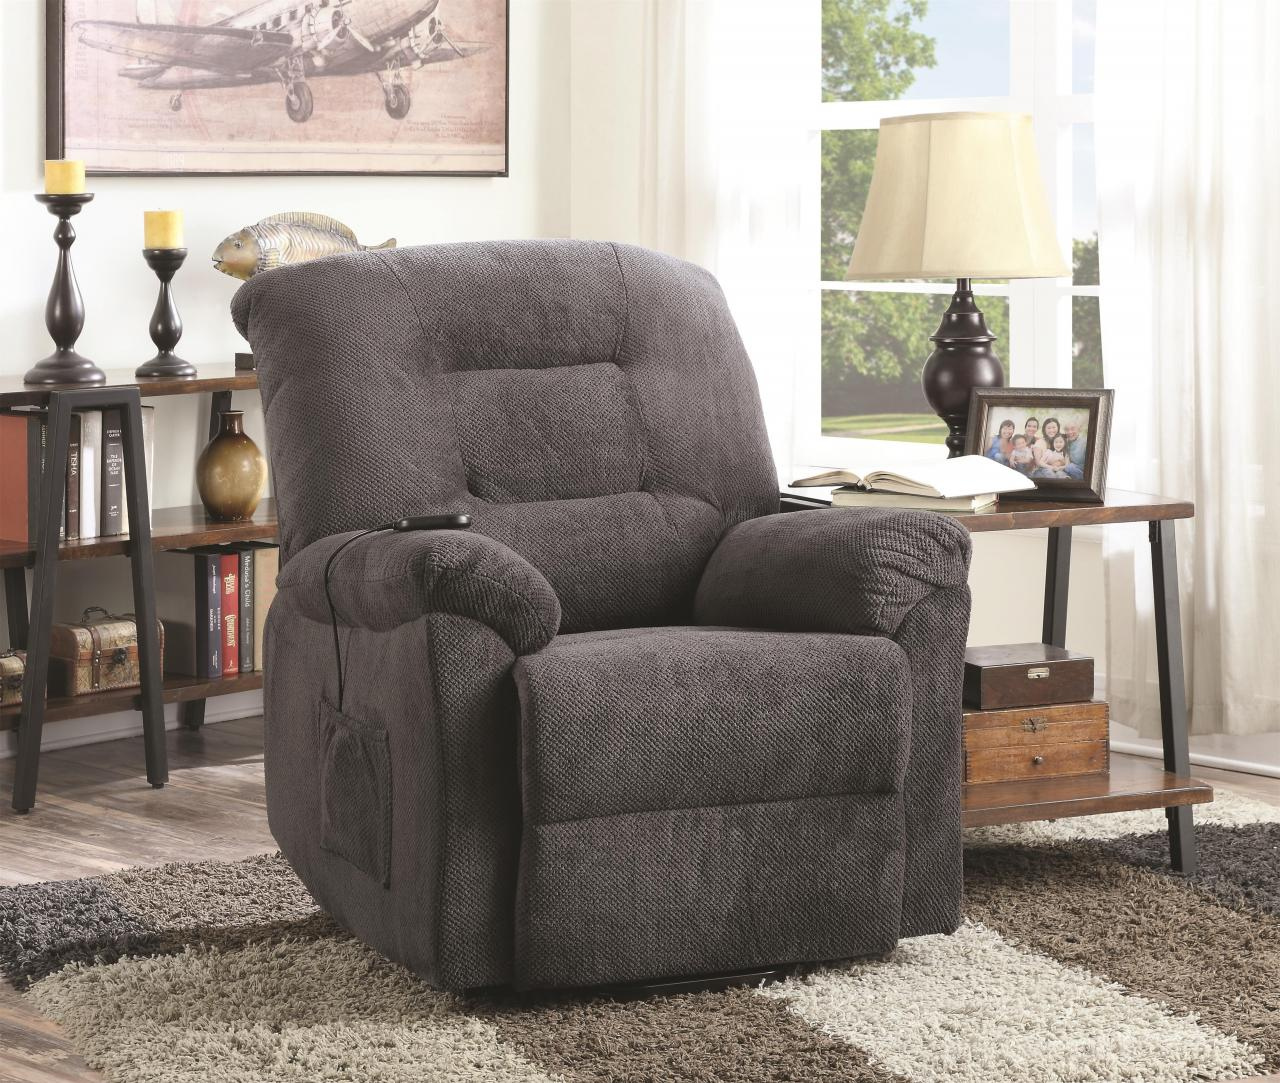 merlot products huge incl chairs front position amerglide technoloties pr guard lush chair special technologies fabrics protection stain capri delivery tech golden with recliner door lift